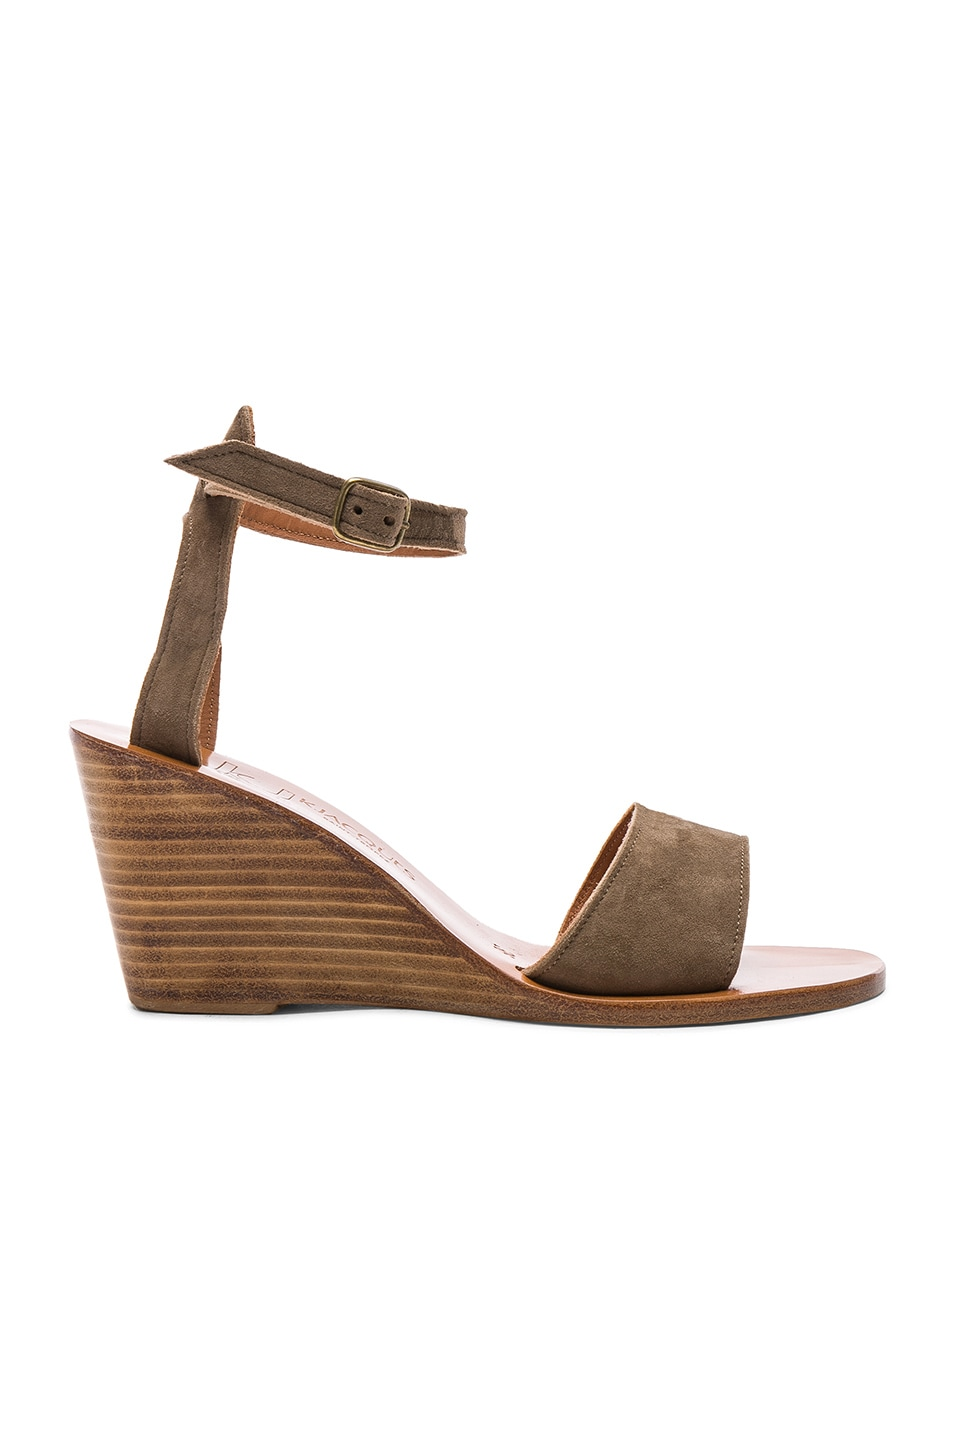 Image 1 of K Jacques Sardaigne Wedges in Velours Fomgo